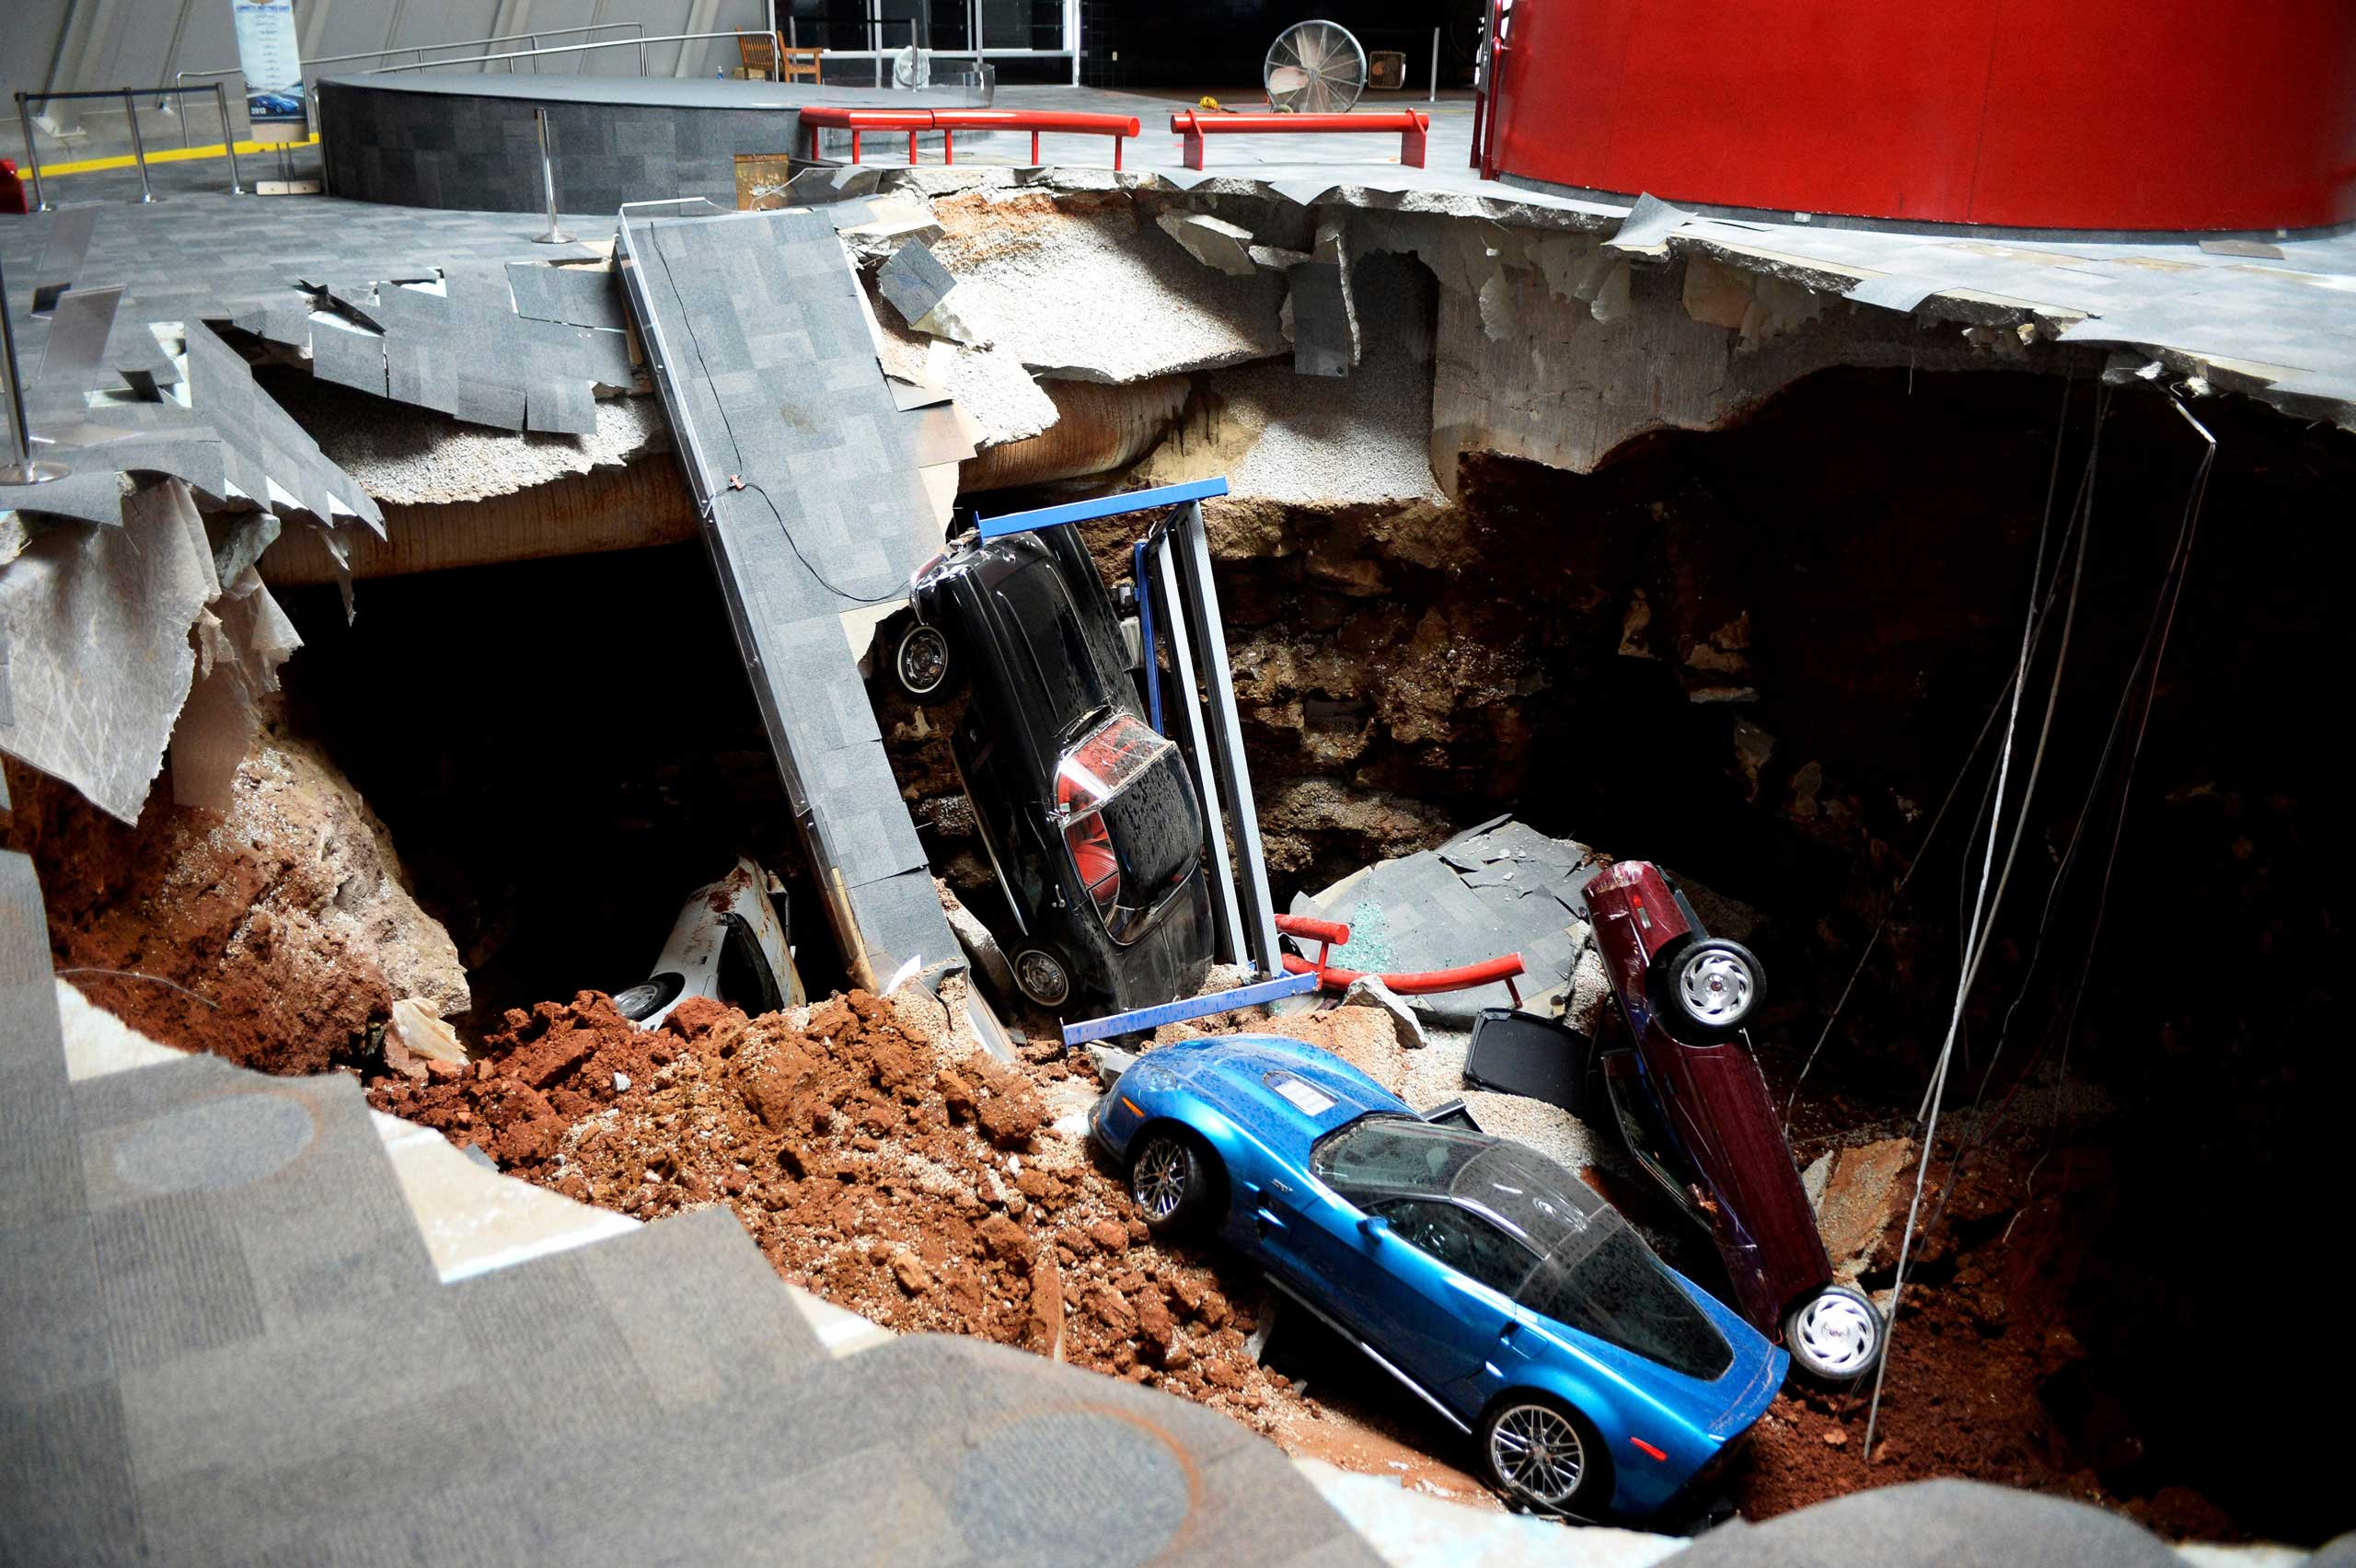 A sinkhole swallows eight classic and historic Corvettes at the National Corvette Museum in Bowling Green, Ky., Feb. 12, 2014.